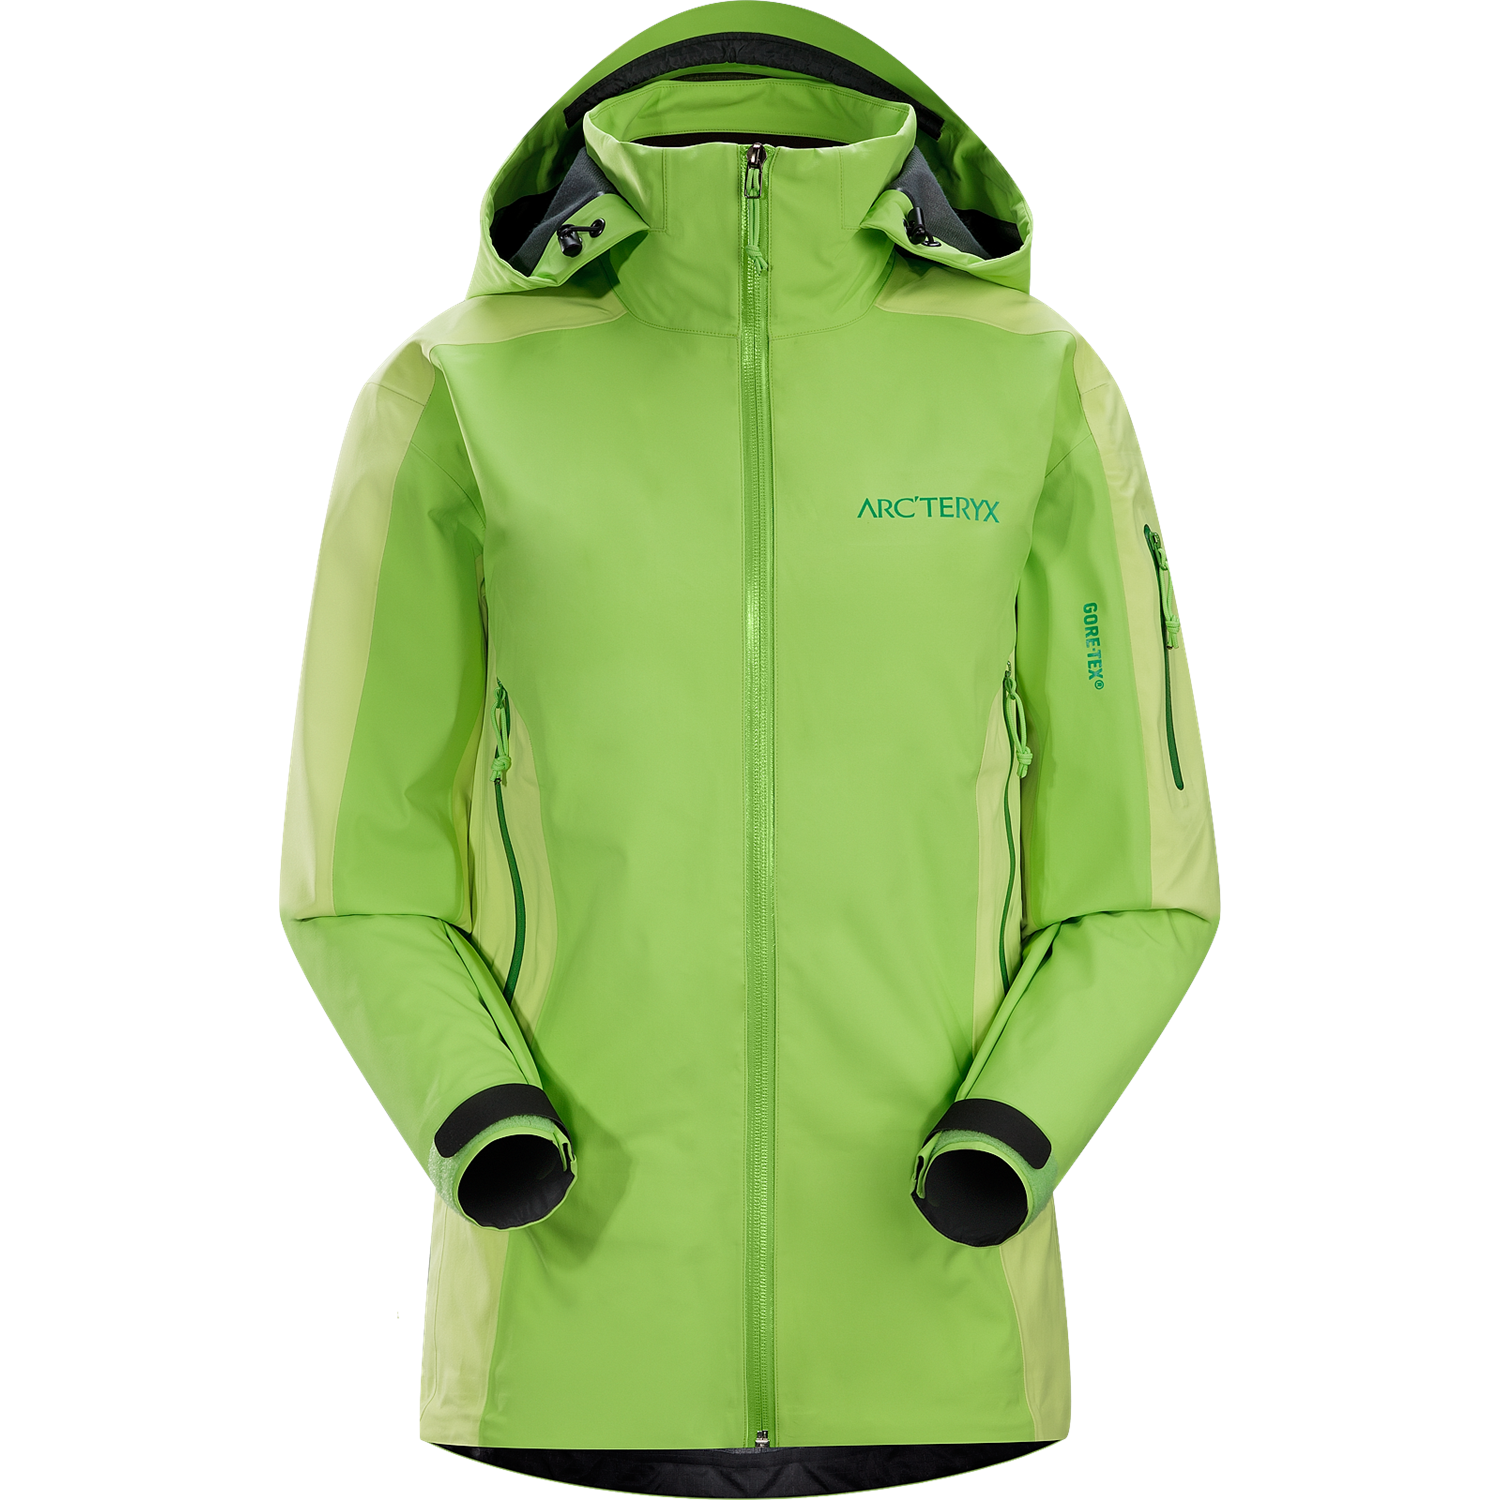 Arc Teryx Stingray Jacket Women S Evo Outlet